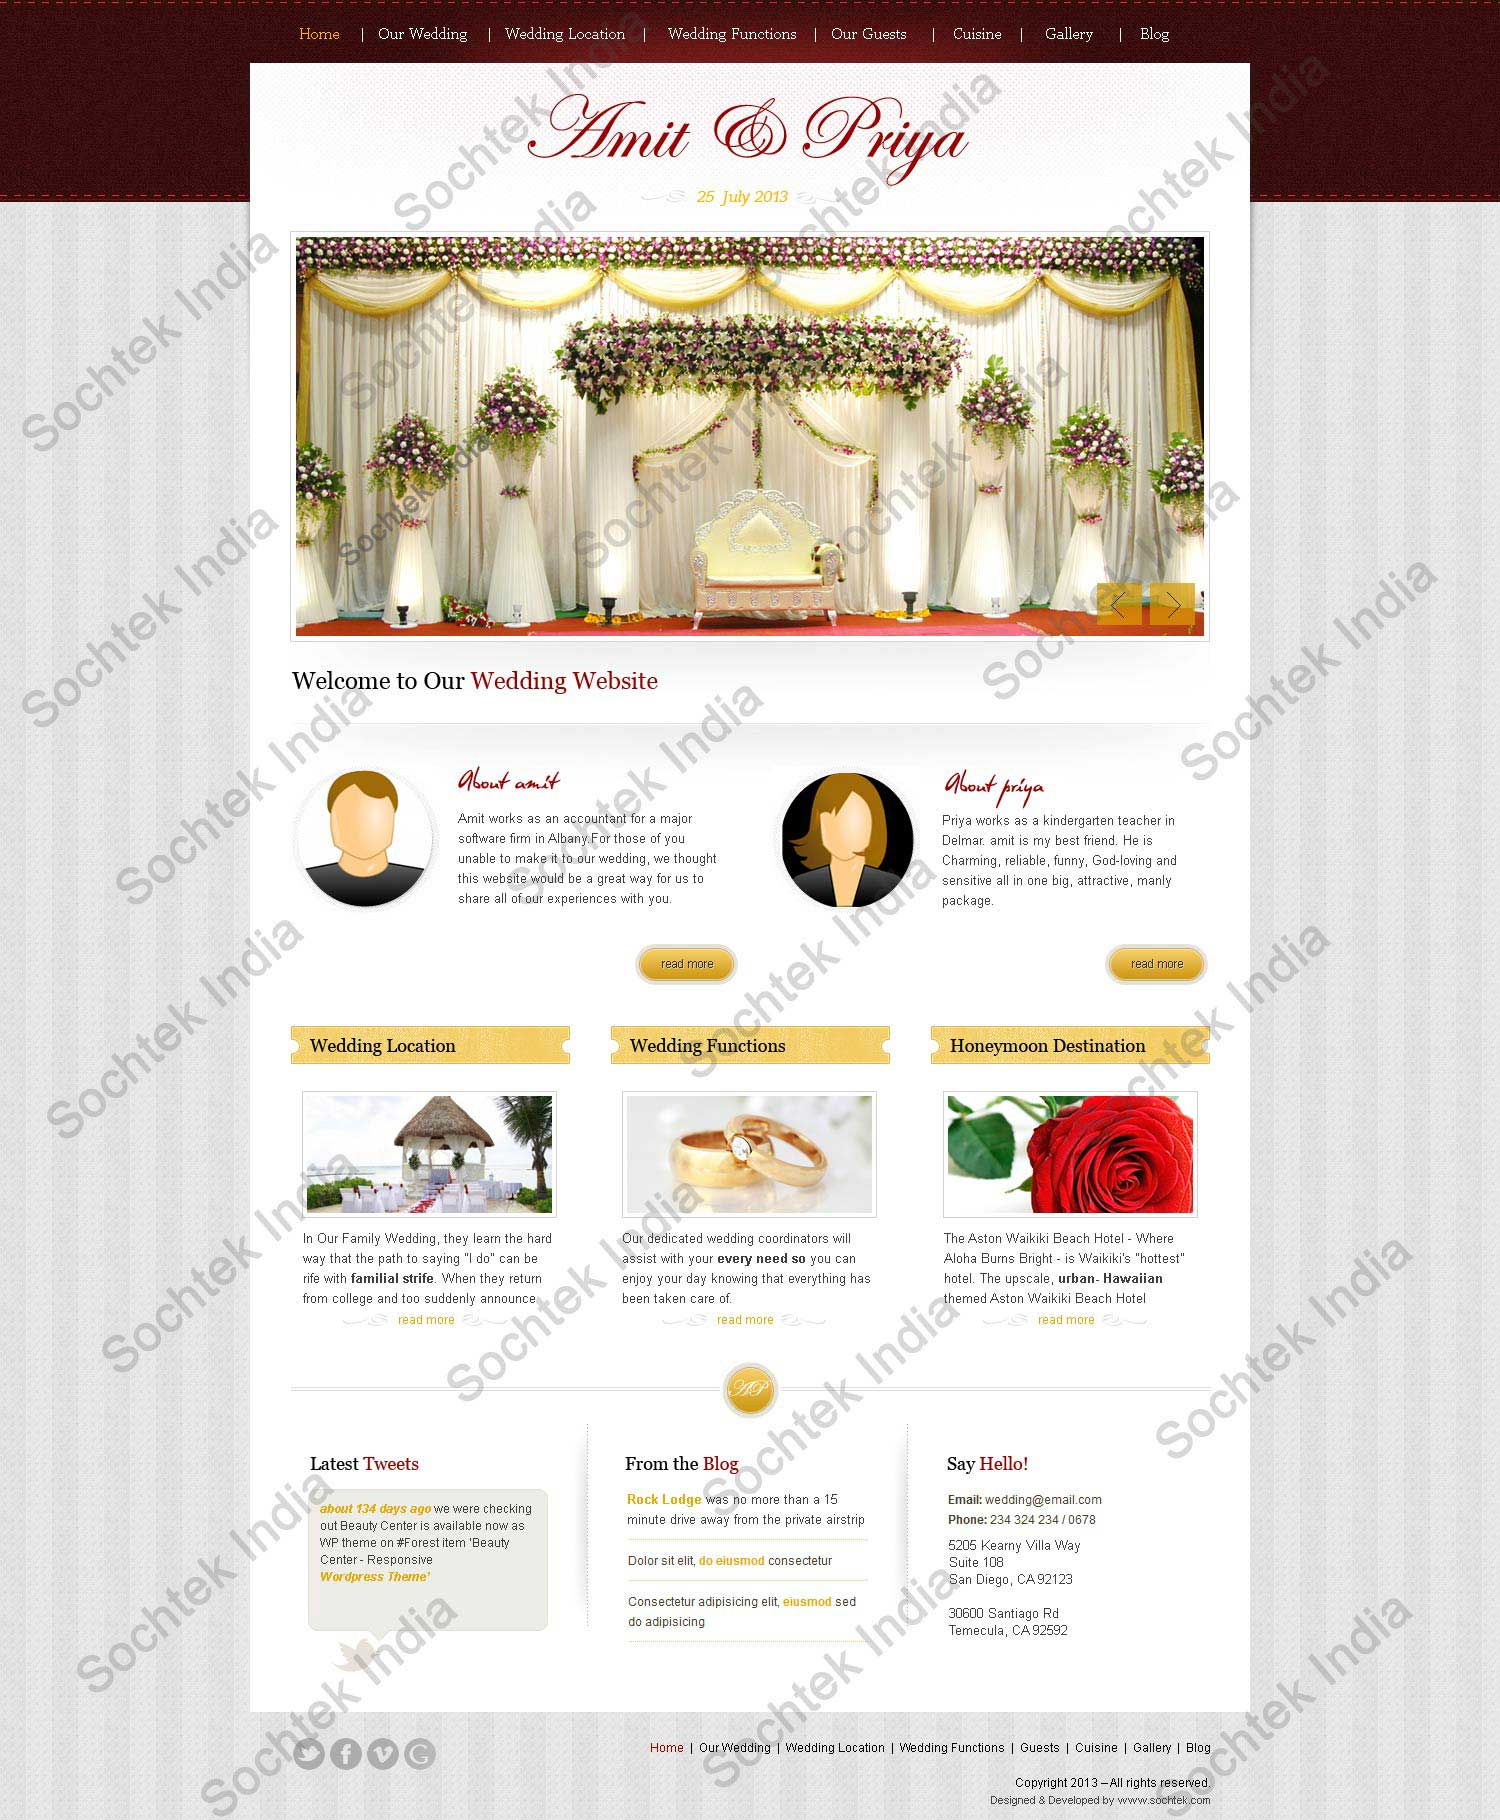 wedding-website-design2